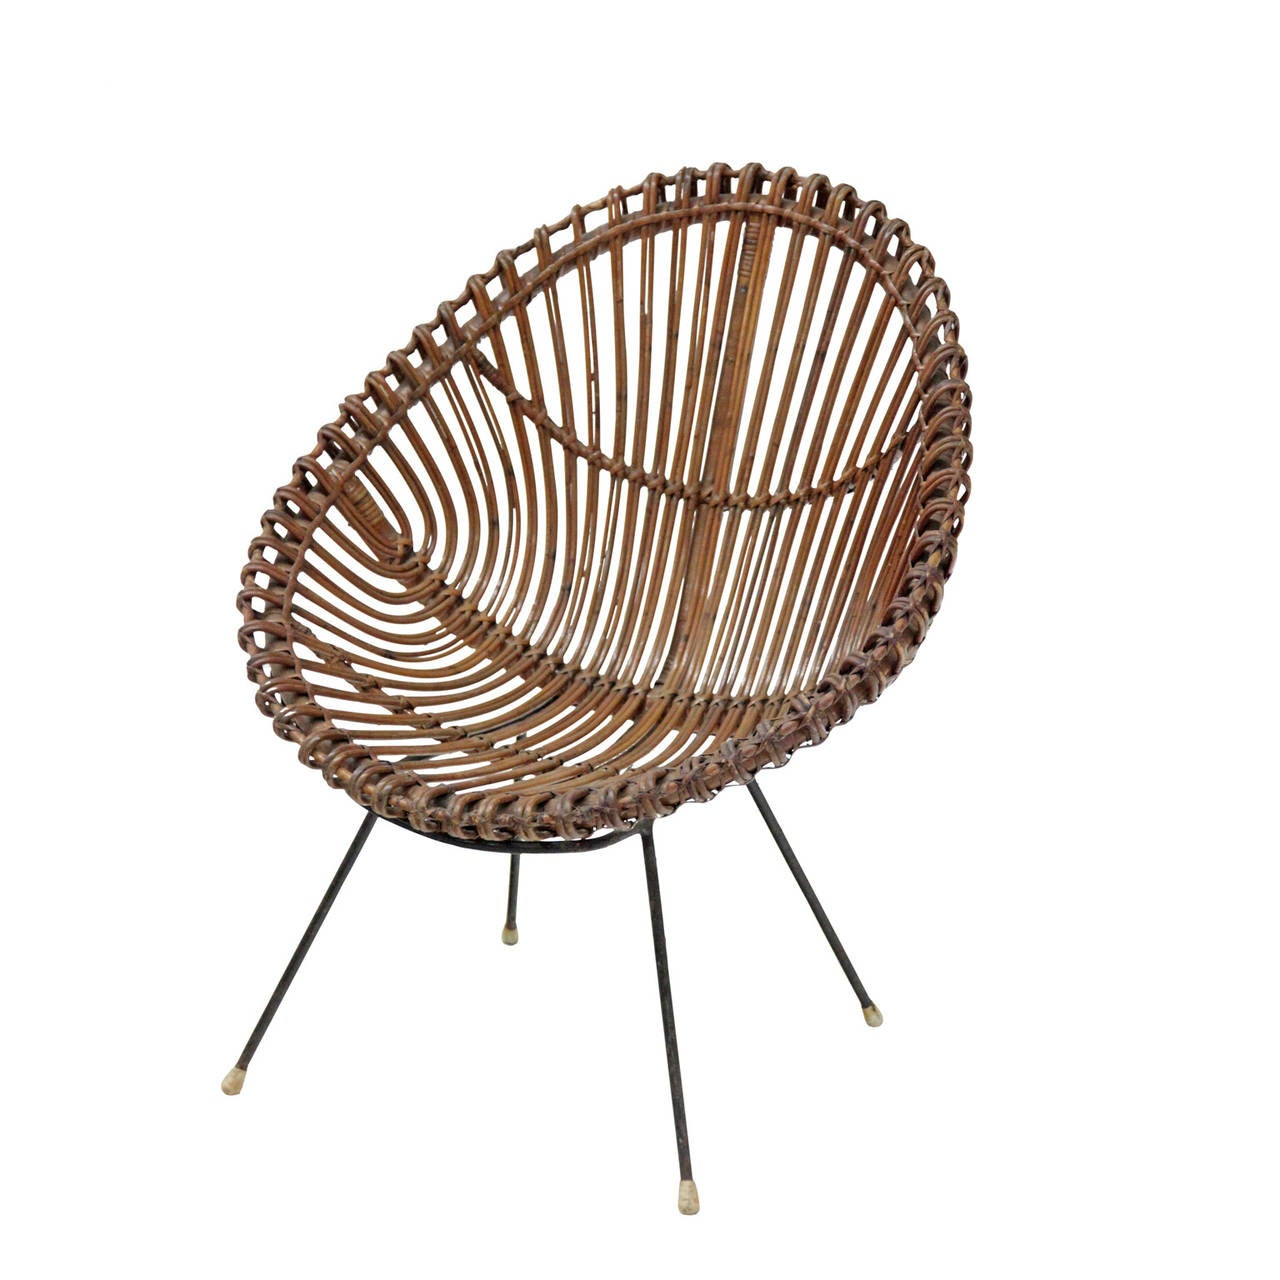 Wicker Chair For Sale at 1stdibs